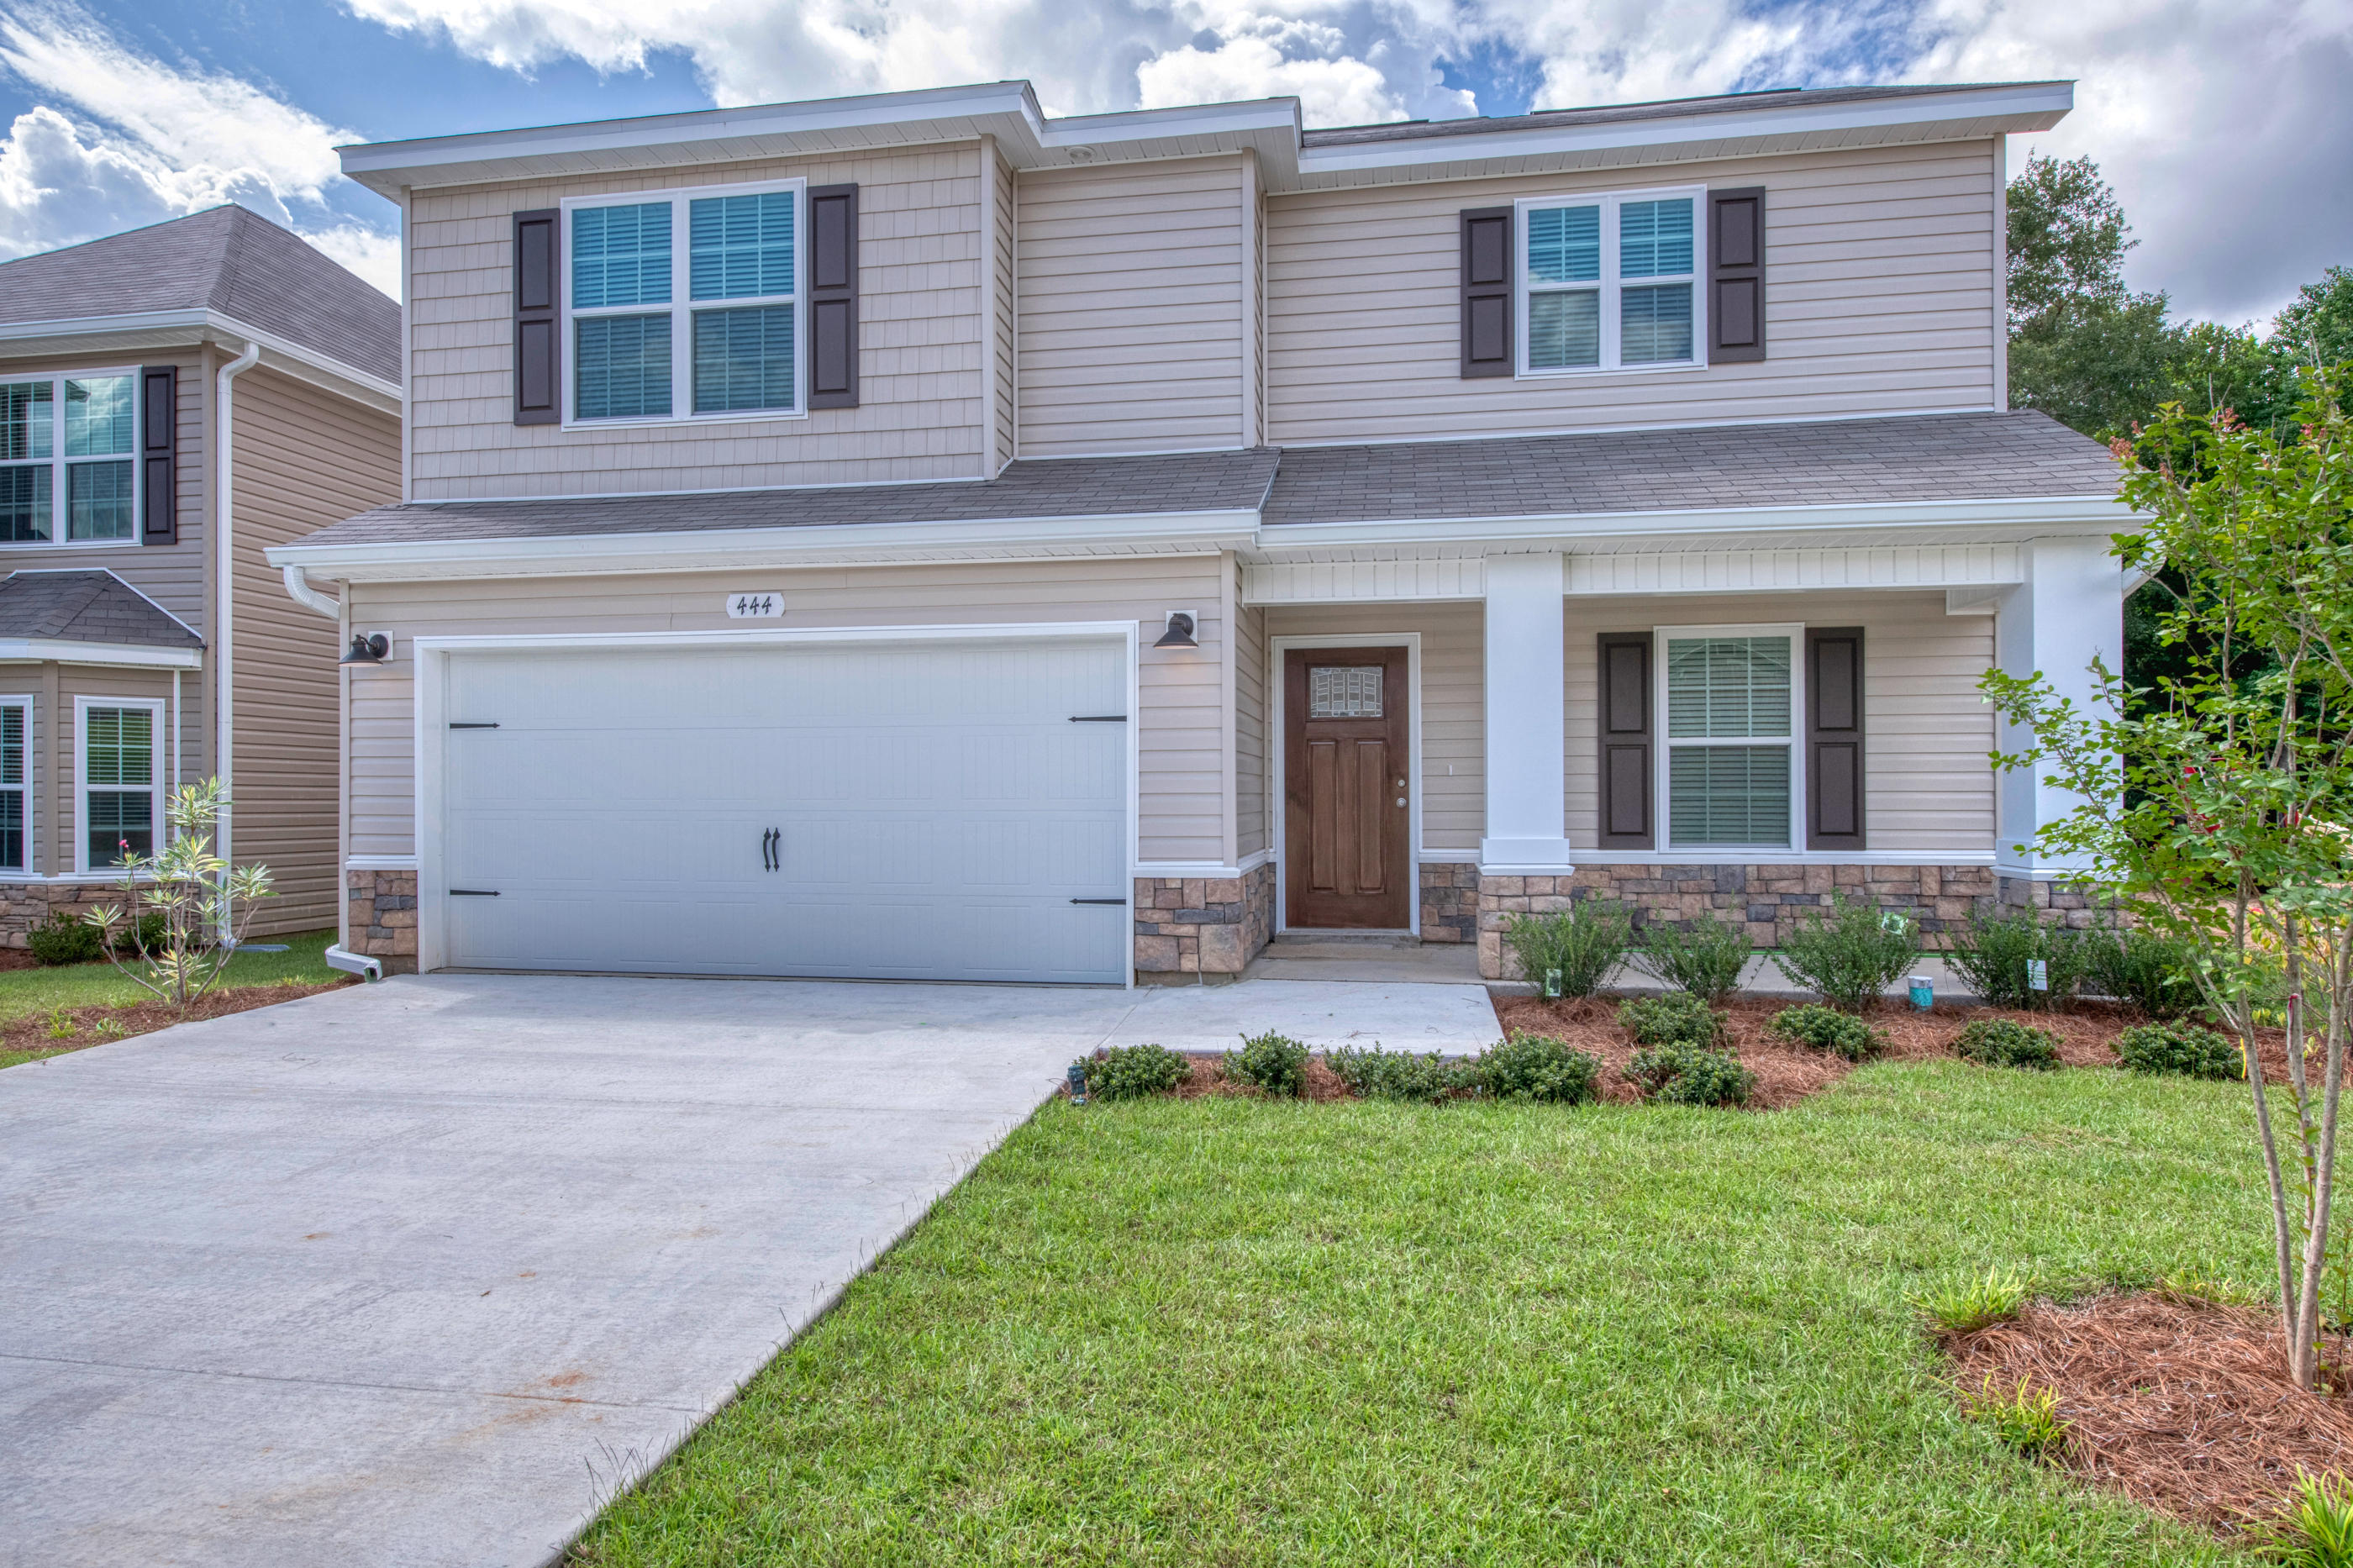 Photo of home for sale at 105 Bolte, Crestview FL